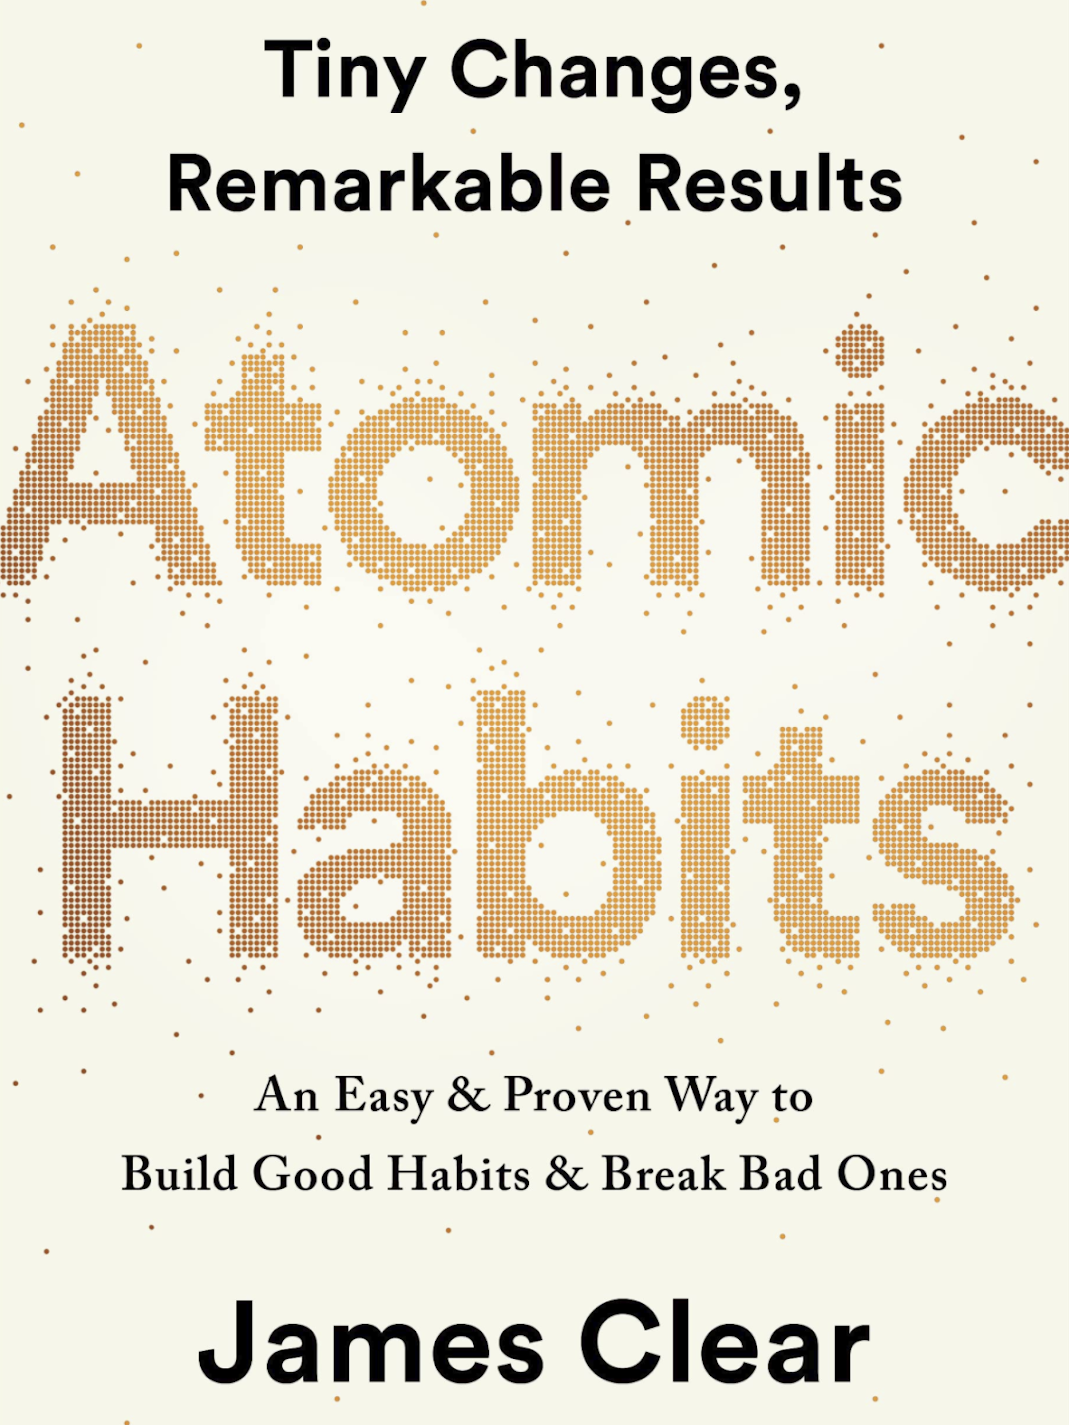 Atomic Habits - An Easy & Proven Way to Build Good Habits & Break Bad Ones by James Clear